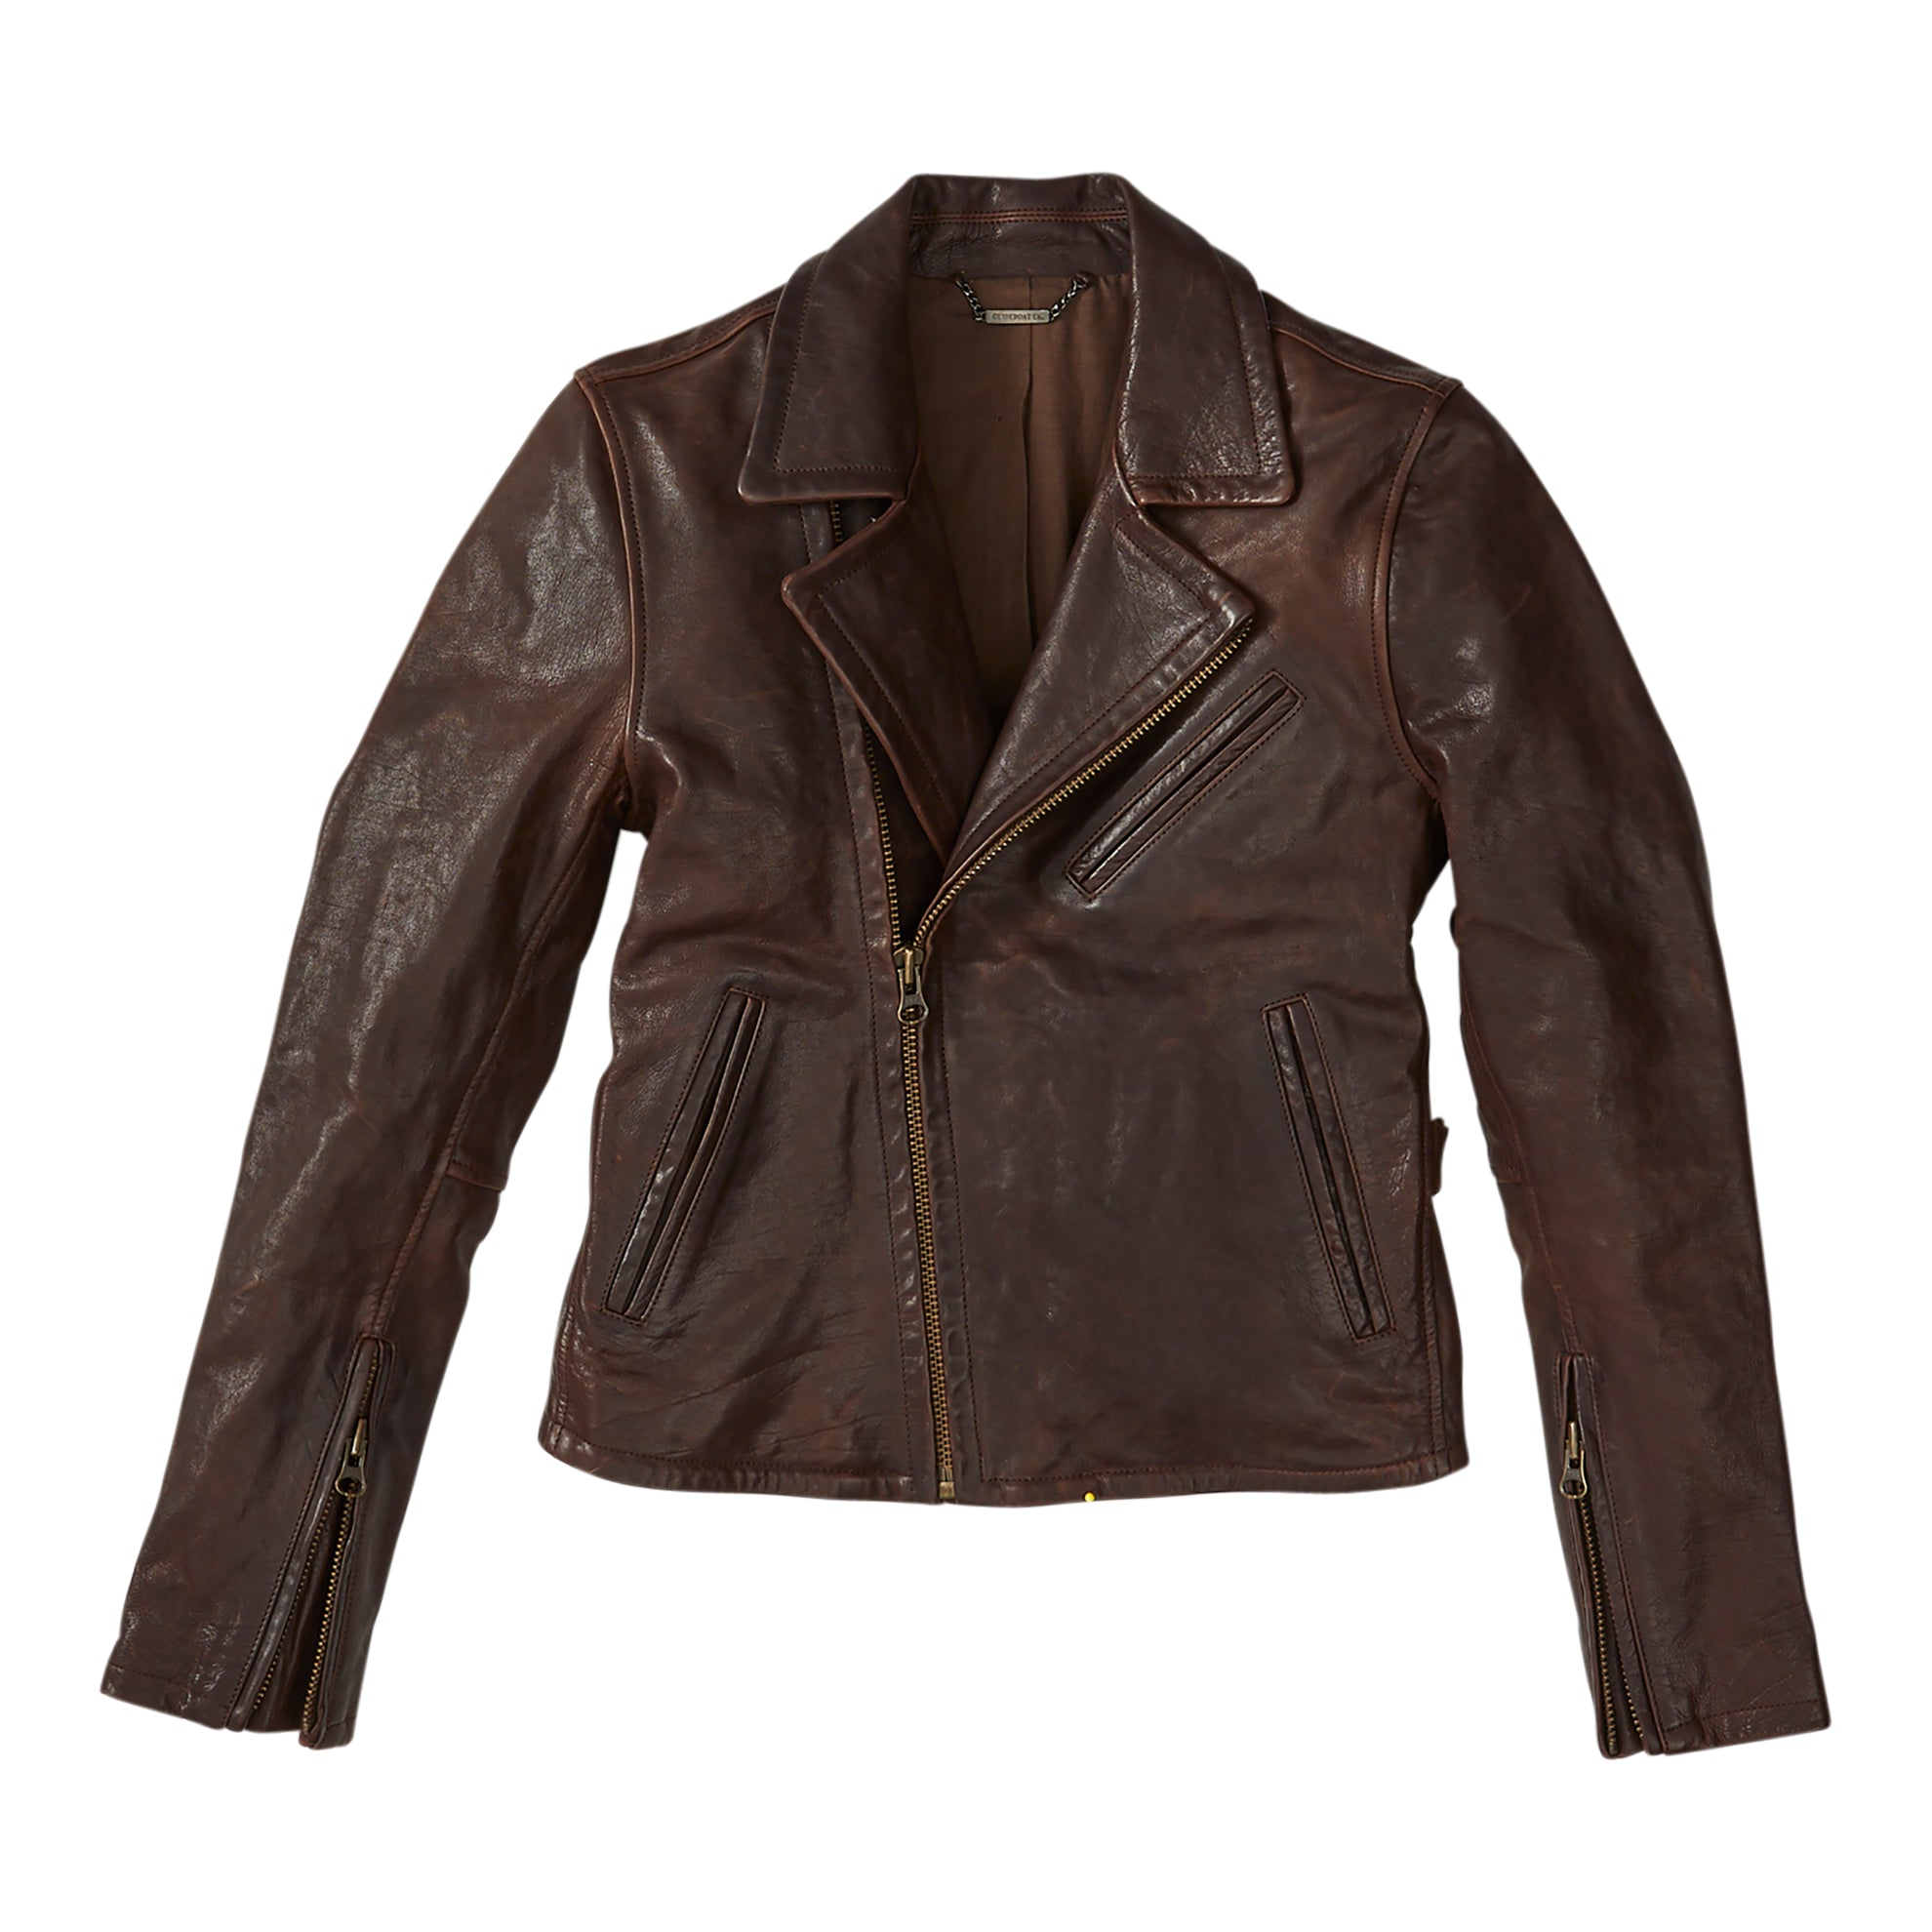 1930s European Motorcycle Jacket